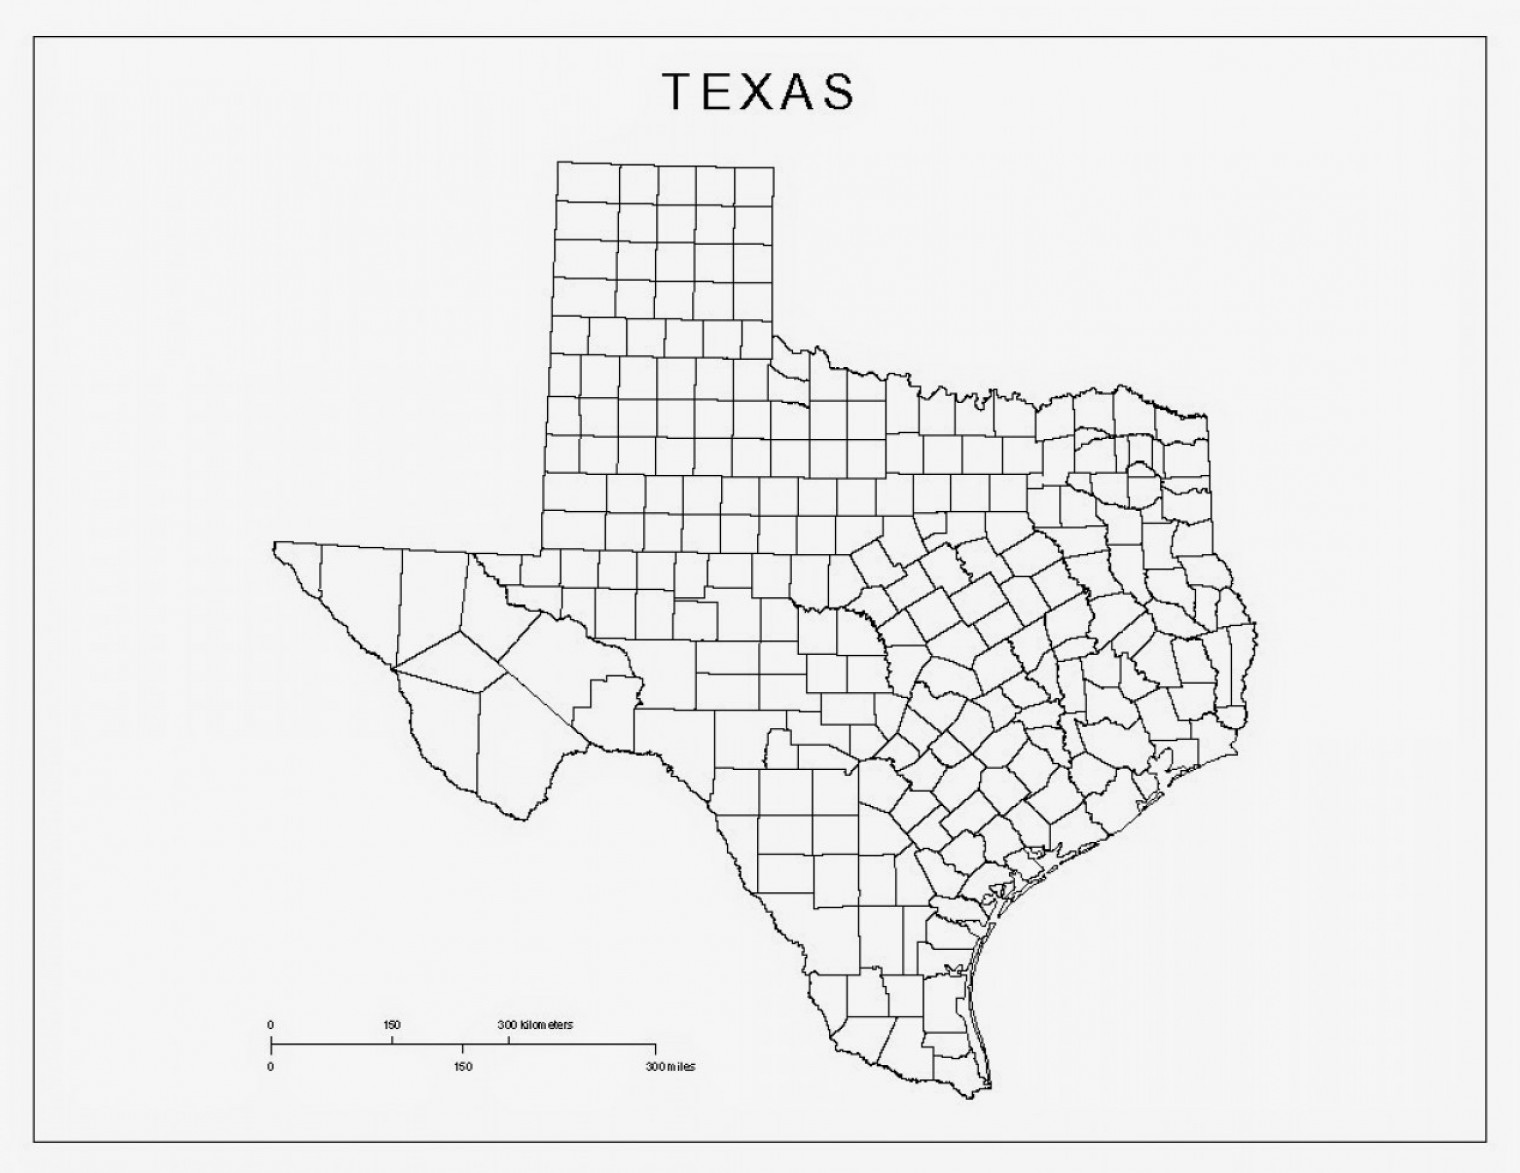 WI County Map Vector: Map Of The Us State Of Texas Vector High Resolution Map Black And White Texas Map